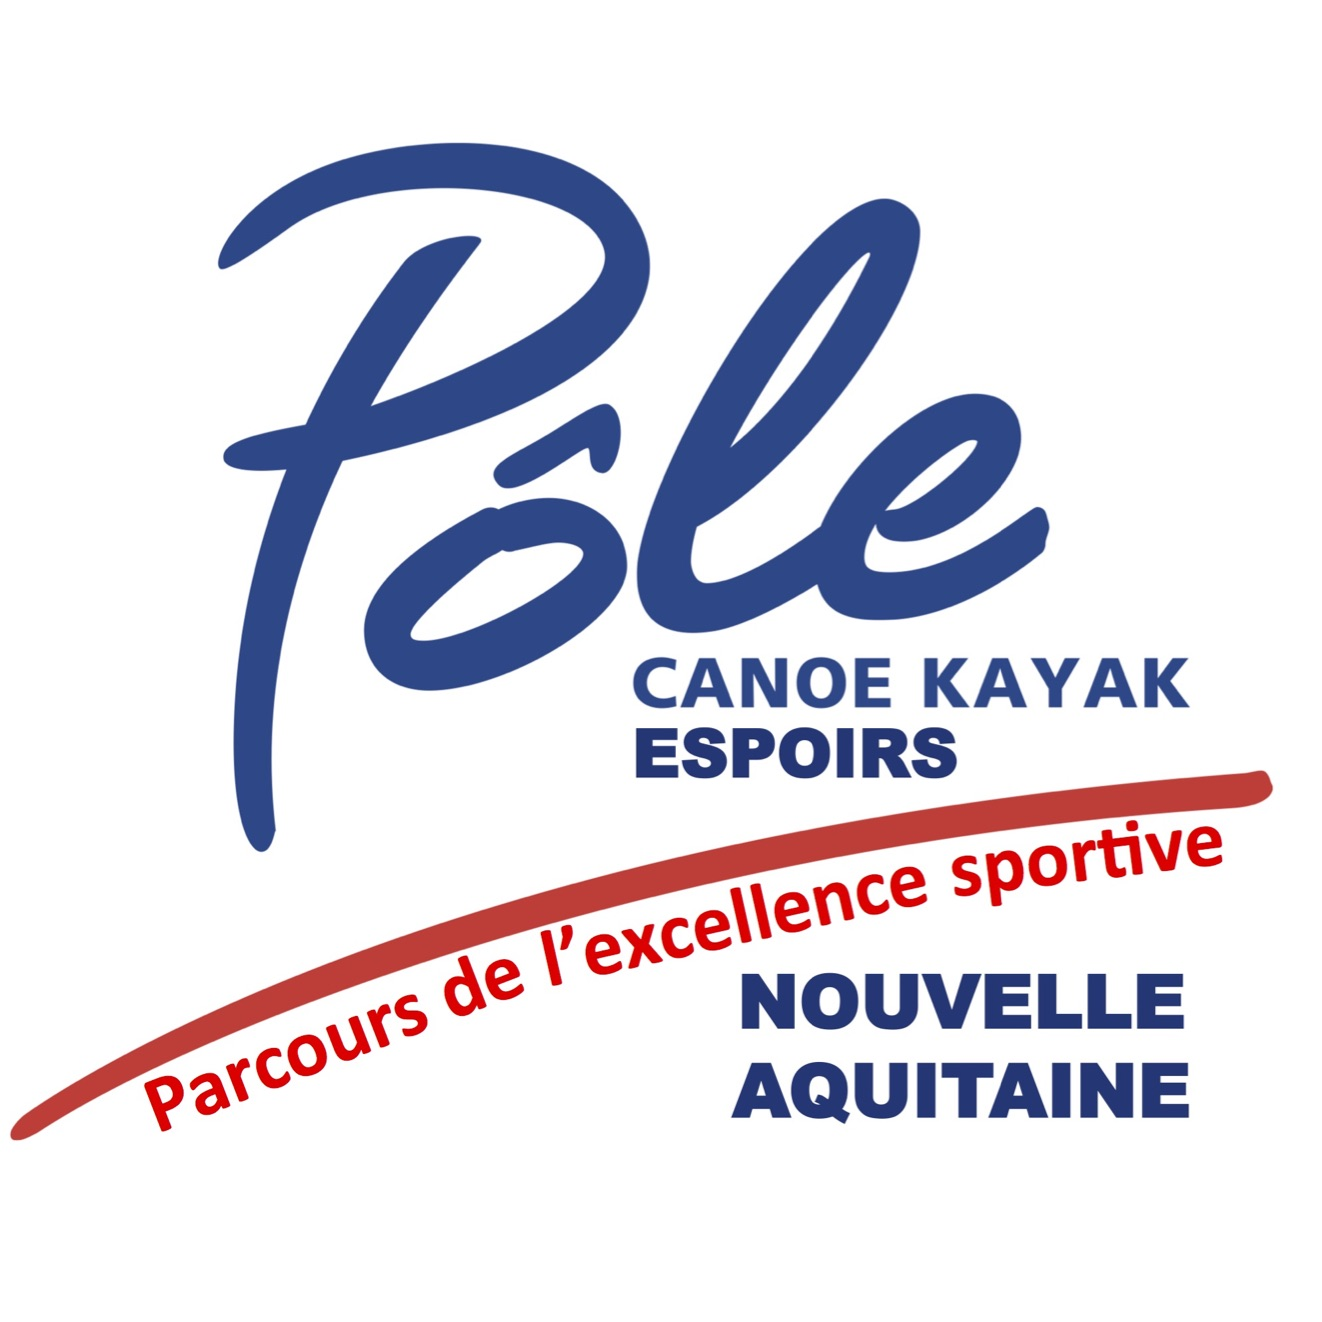 Informations Tests PASS et pratique sportive